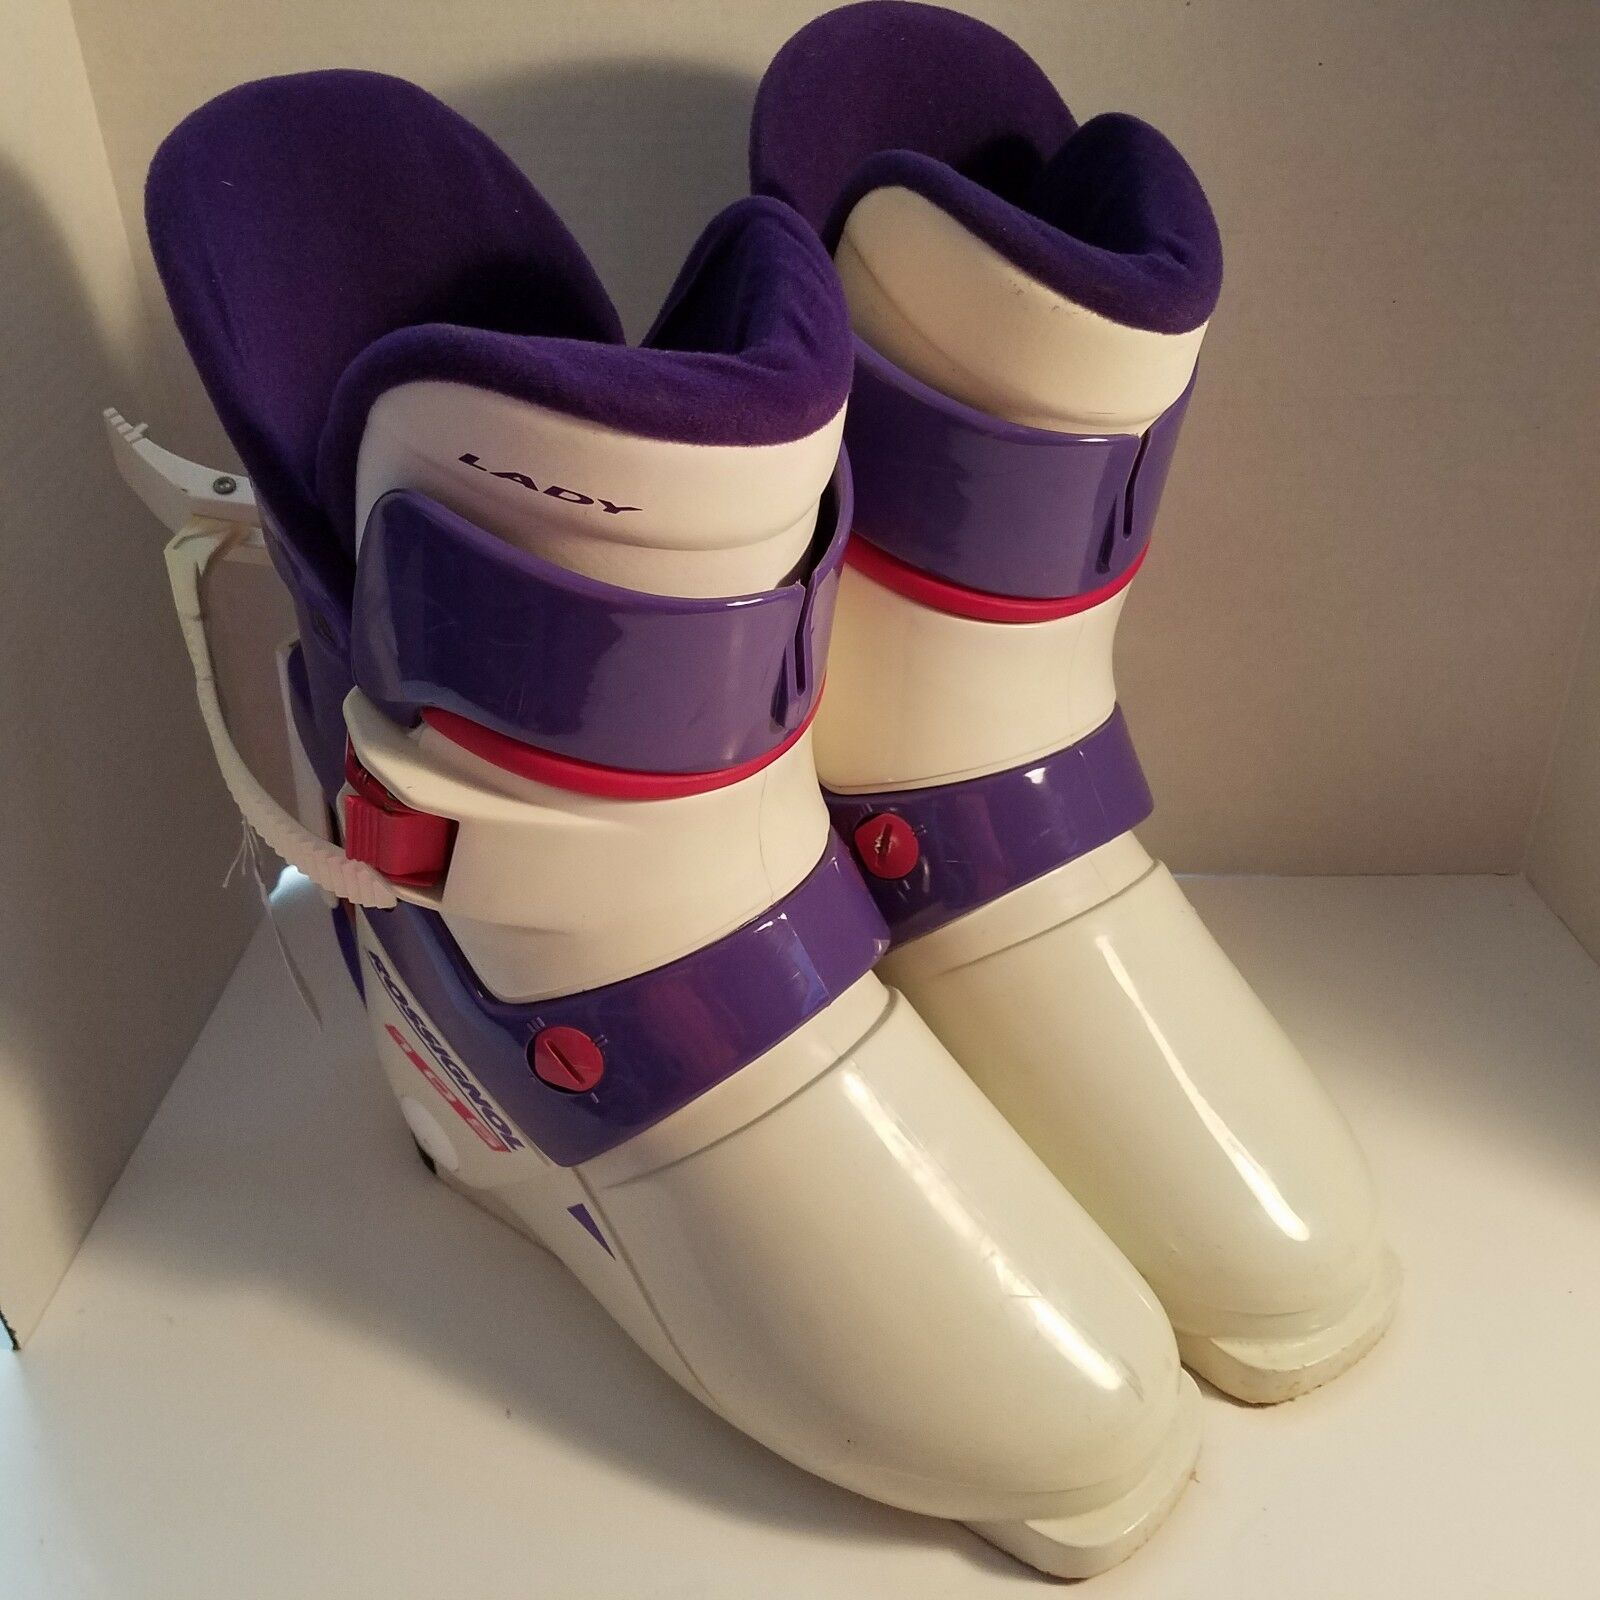 Rossignol Lady 105 Womens Ski Boots Size 25.5 White purple Made In